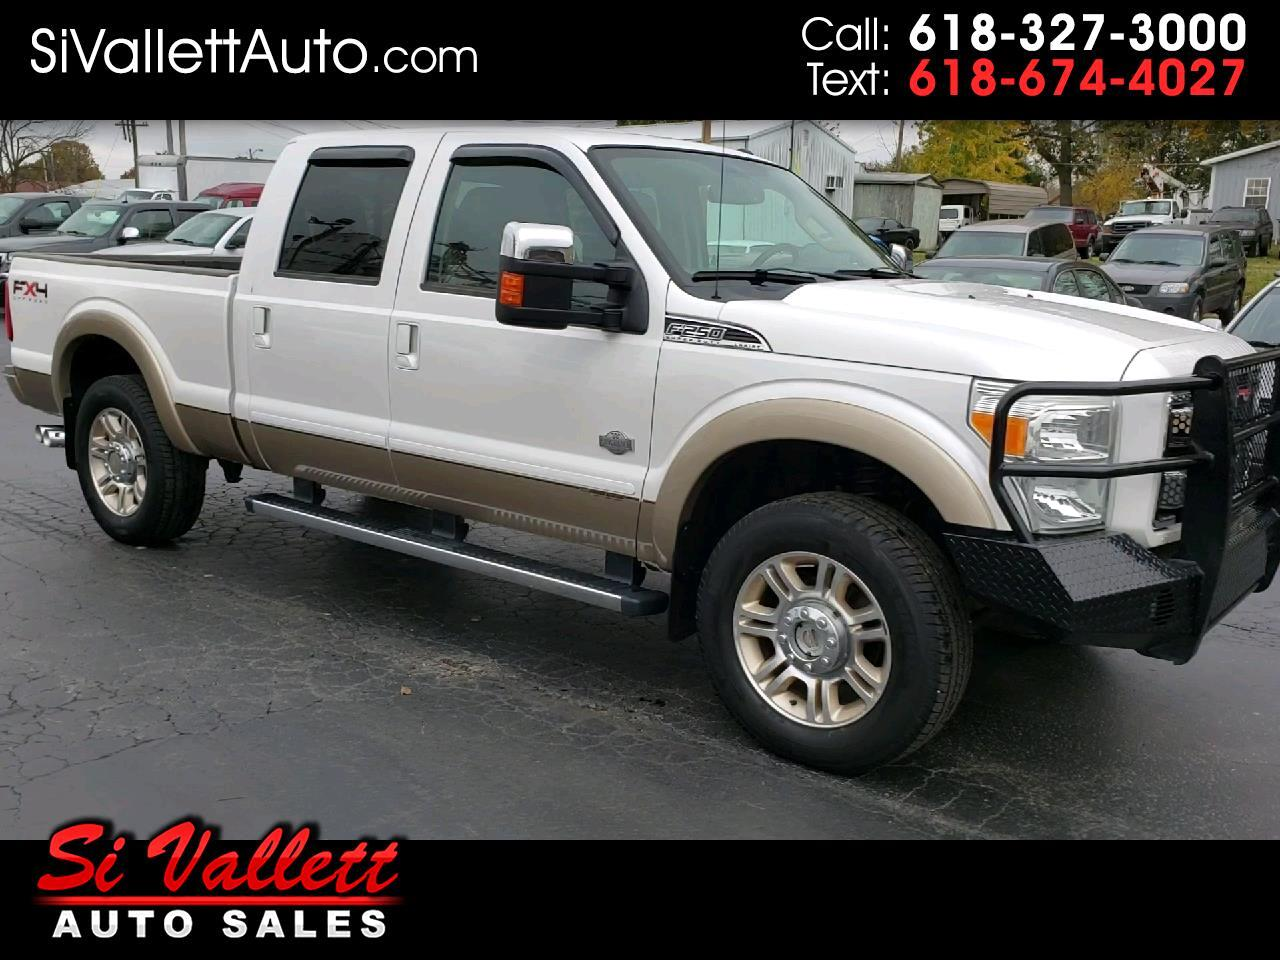 2011 Ford Super Duty F-250 SRW Crew Cab 4X4 Shortbed